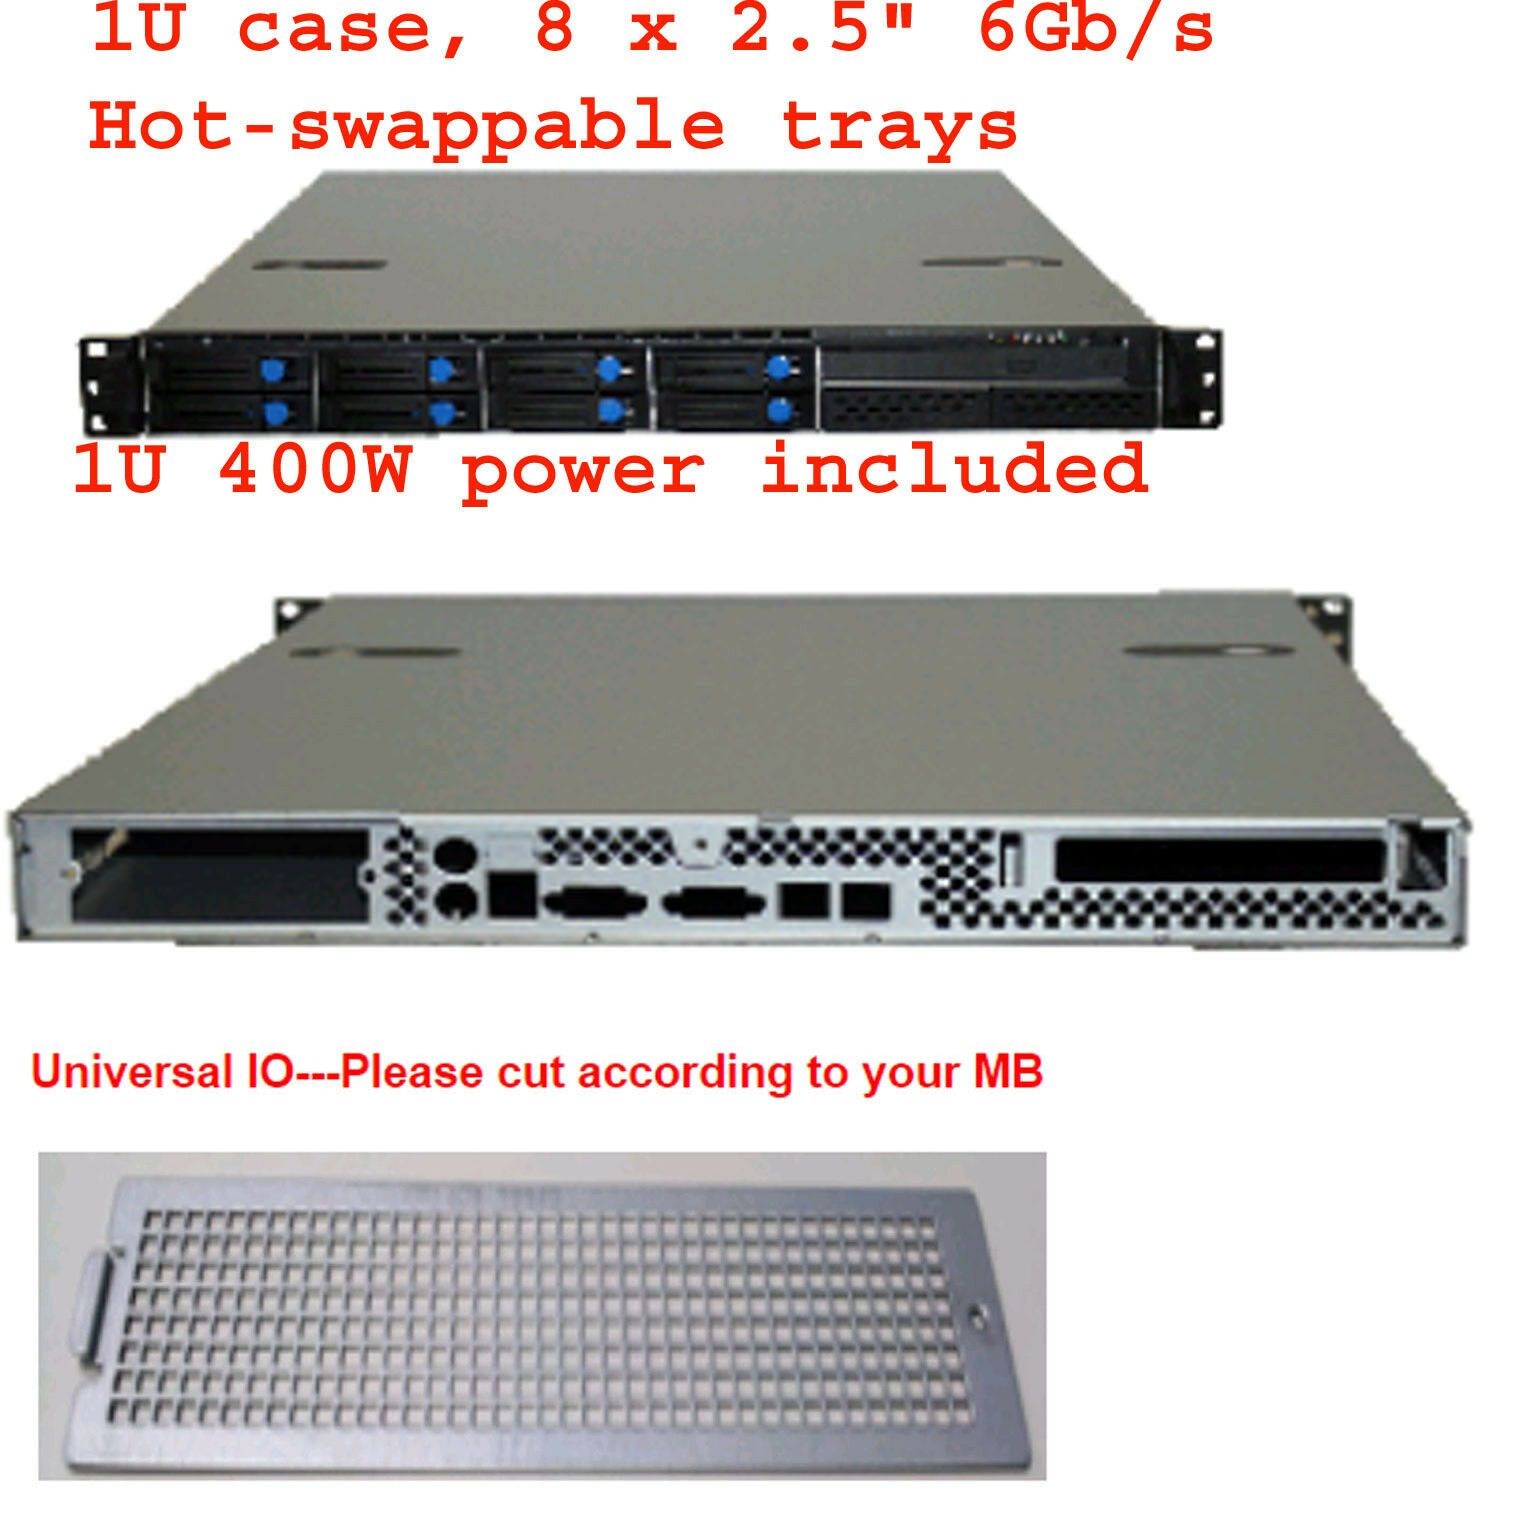 Rackmount Cases And Chassis 64061 1u W 400w Psu 8 X 2 5 6gb S Hdd Bay Rackmount Chassis Micro Atx Itx Case Buy It No Riser Cards Atx Retail Packaging